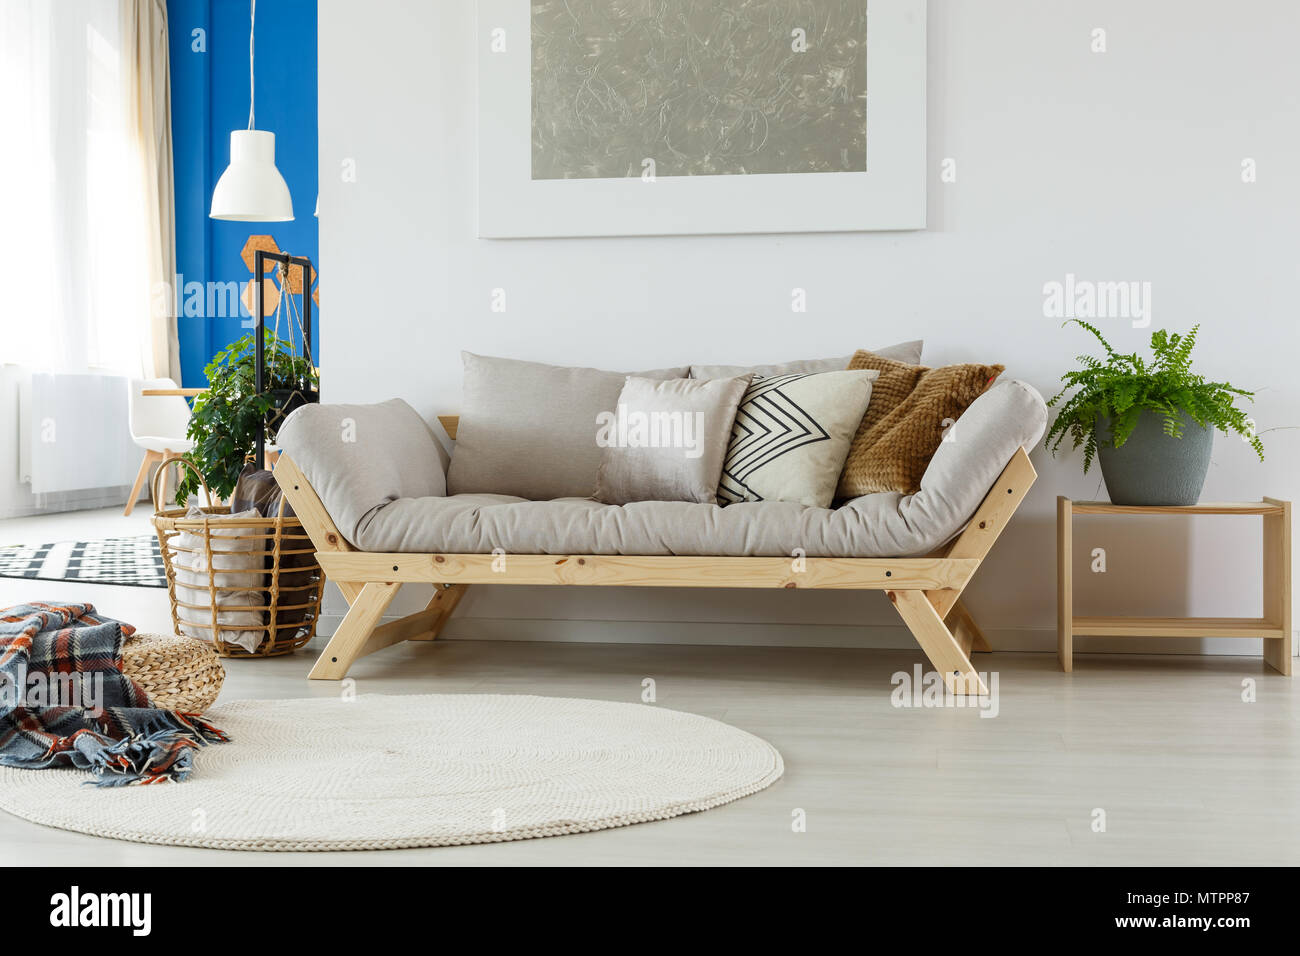 Comfortable Cozy Sofa, Rug, Painting, Pillows, Plants And Natural Eco  Materials In Modern Bright Room